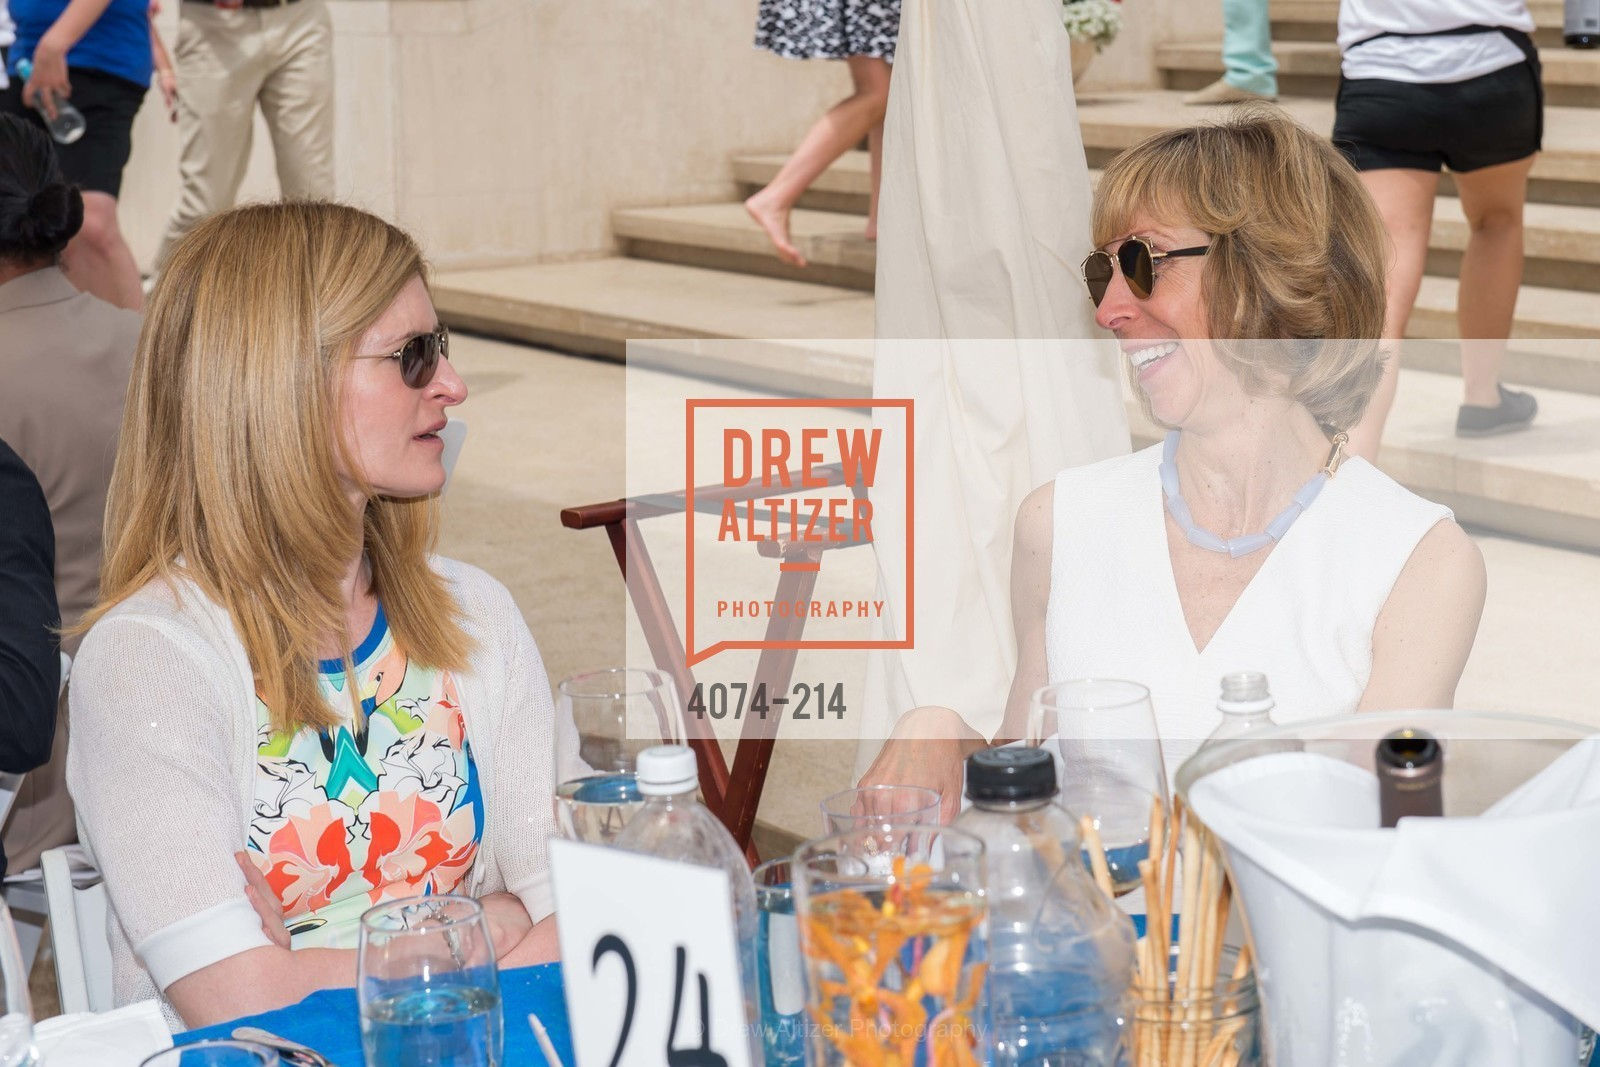 April Isaacson, Nancy Kukacka, Saks Fifth Avenue and The League to Save Lake Tahoe Present Fashion on the Lake, Private Residence, August 1st, 2015,Drew Altizer, Drew Altizer Photography, full-service agency, private events, San Francisco photographer, photographer california